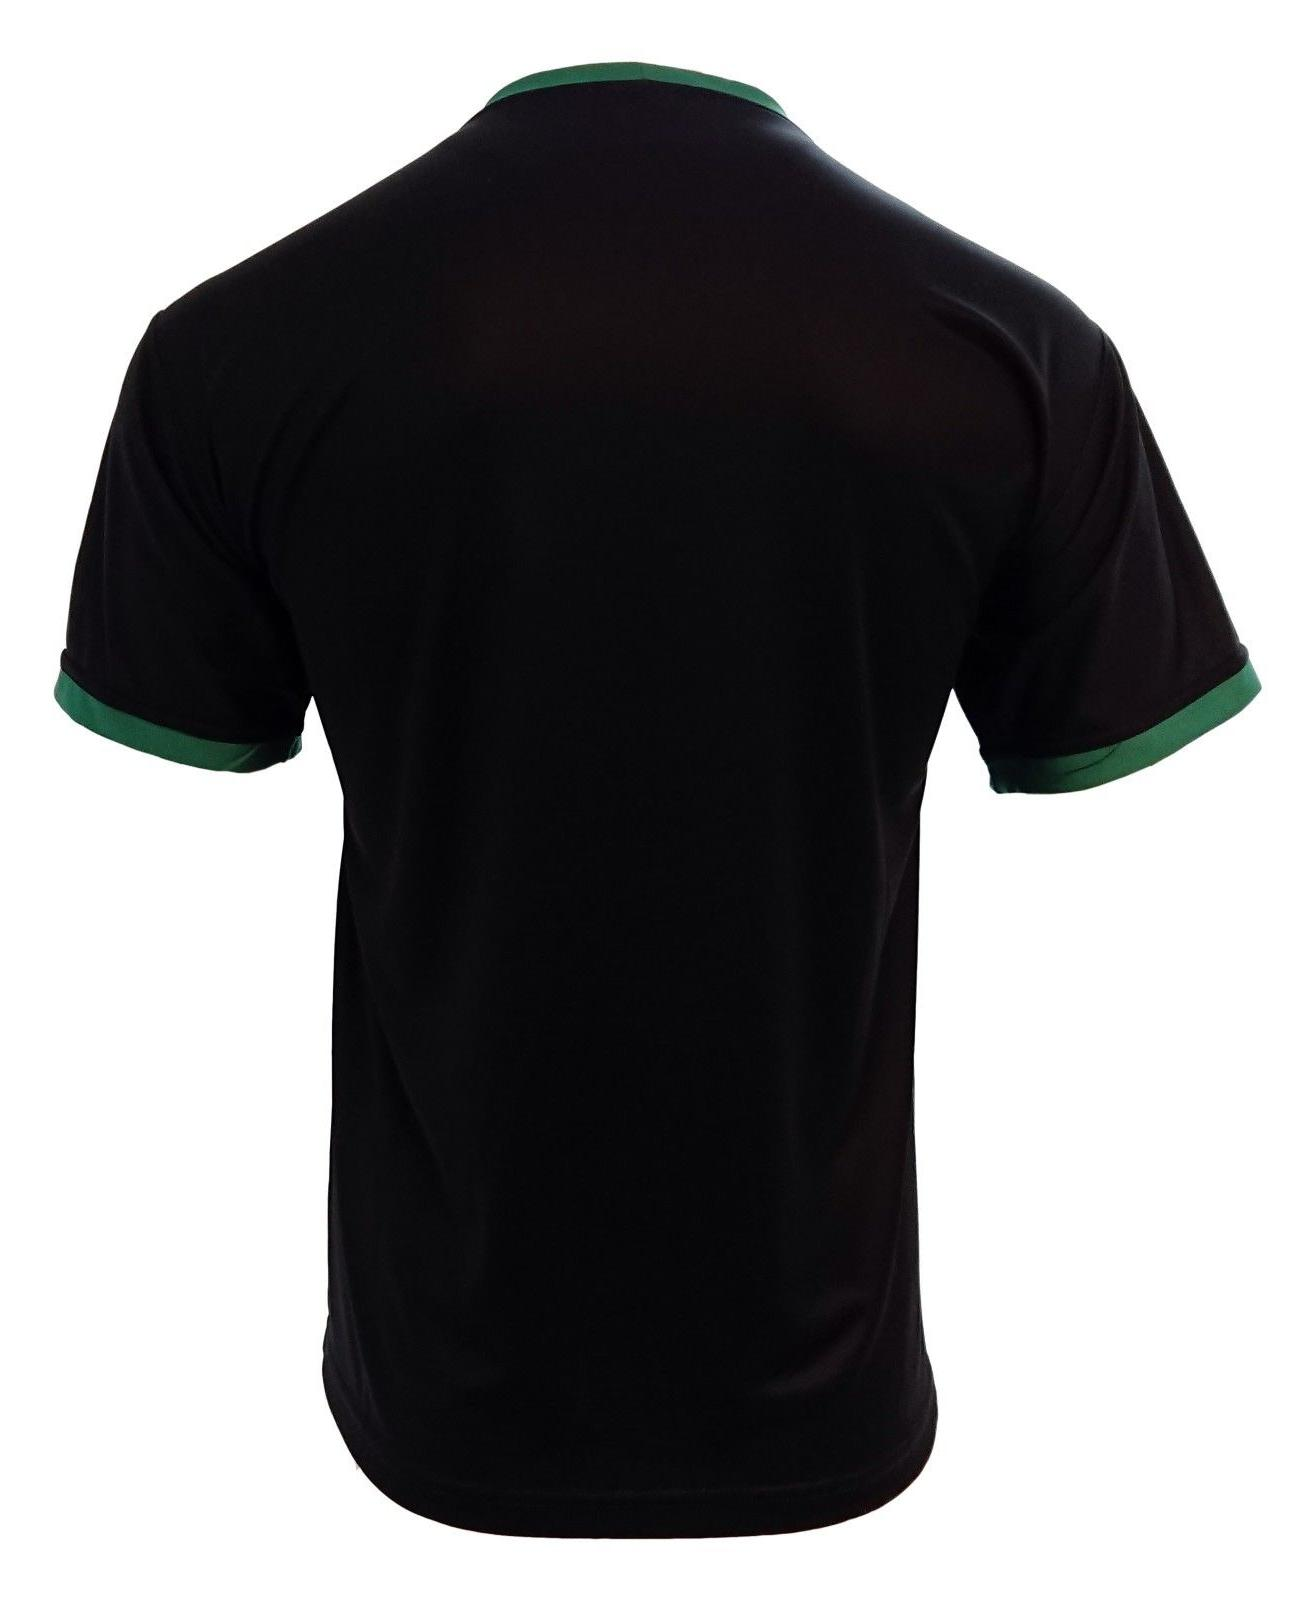 Durango Men Soccer Jersey Black by